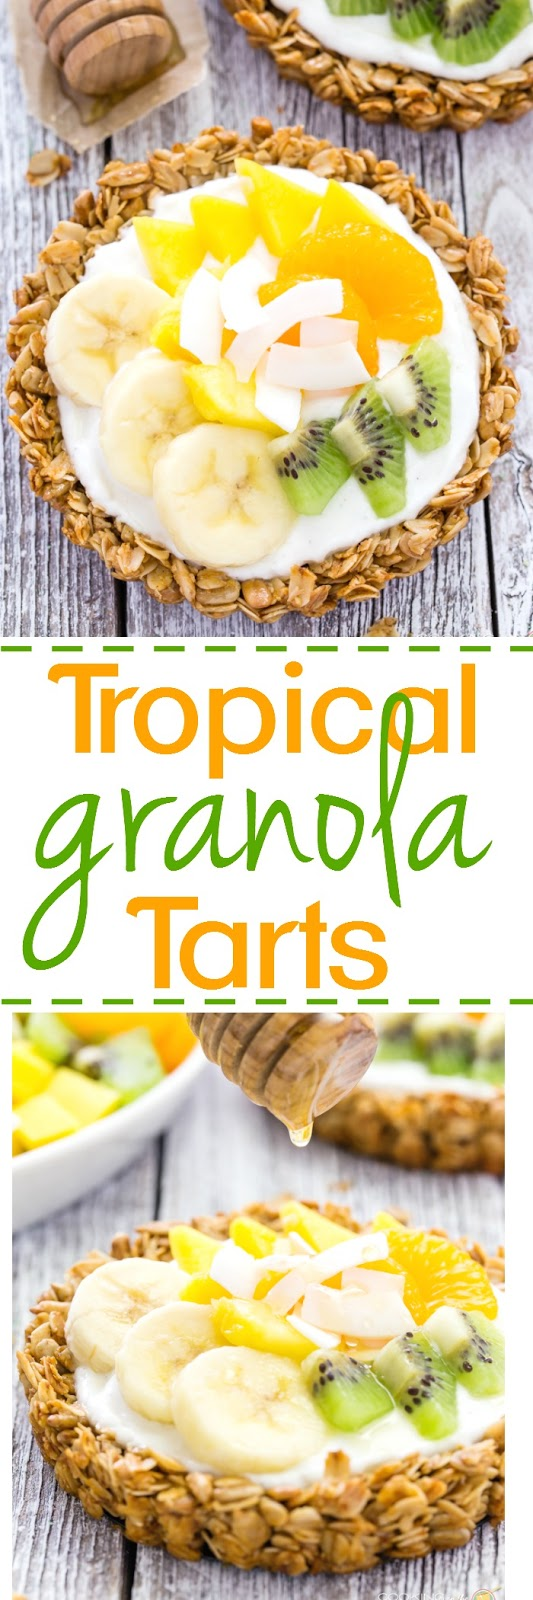 Start your day off right with these granola tarts with creamy vanilla yogurt, topped with tropical fruits and drizzled with golden honey.  Something your taste buds will want to wake up to pronto!